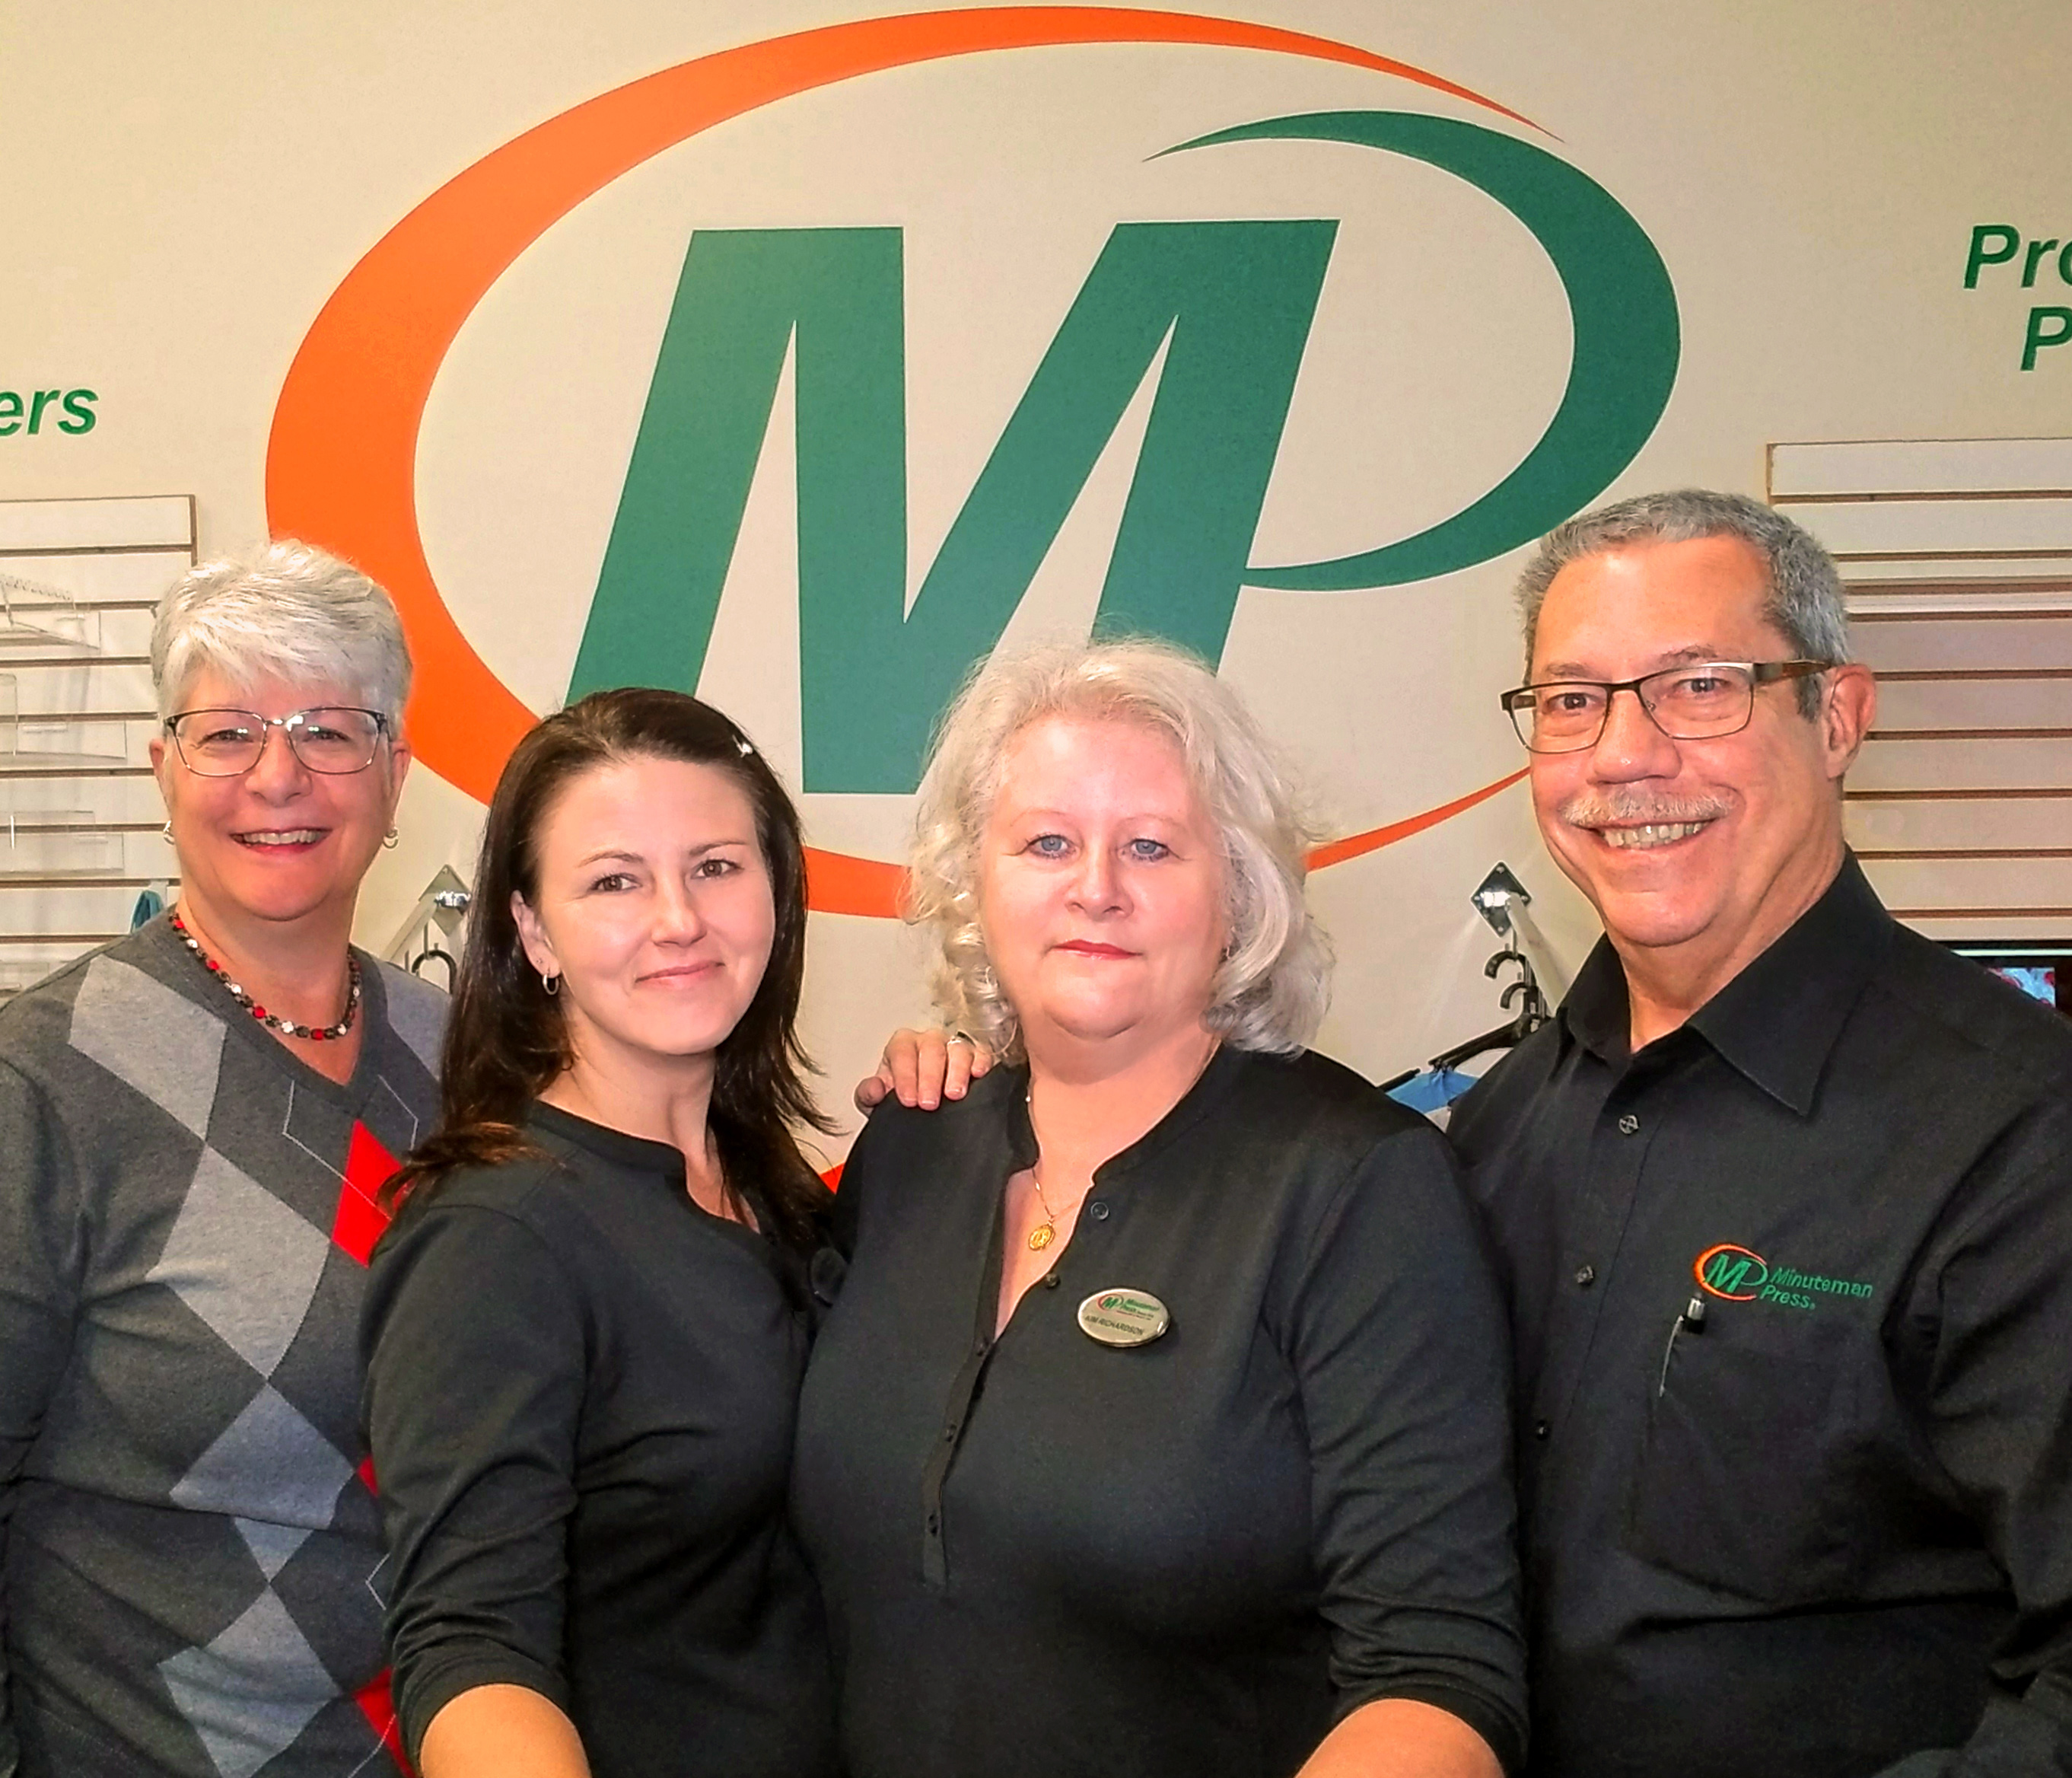 Minuteman Press printing franchise, Beaver Falls, PA – L-R: Nancy Chapple (co-owner), Tracy Hager (graphics and production manager), Kim Richardson (operations manager), and Karl Chapple (co-owner).